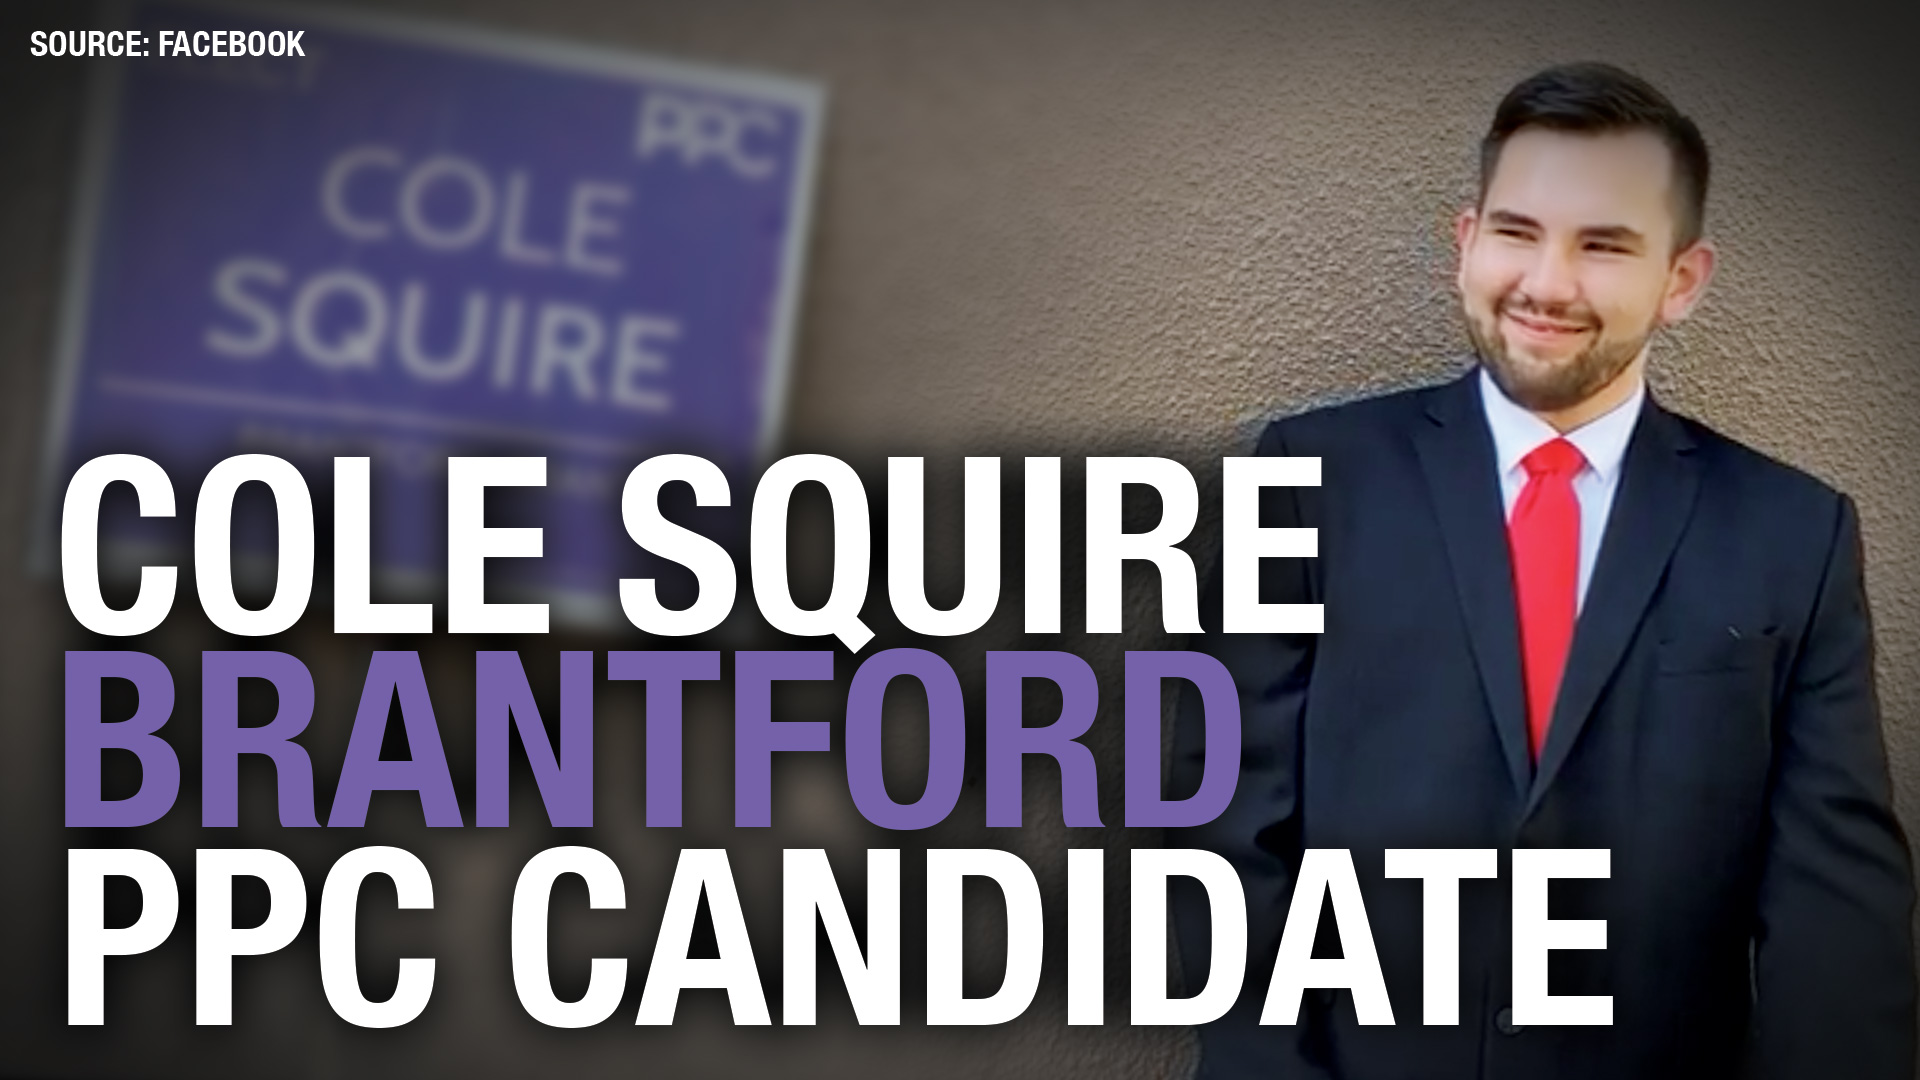 Six Nations PPC candidate Cole Squire talks comparing vax passports with residential schools